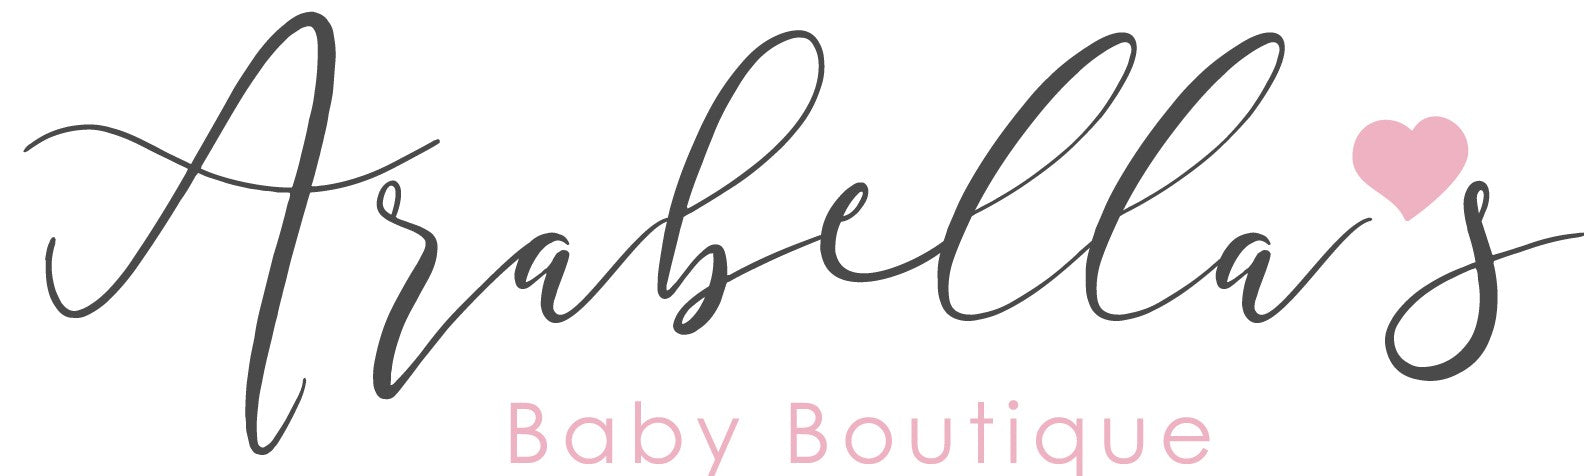 Arabella's Baby Boutique